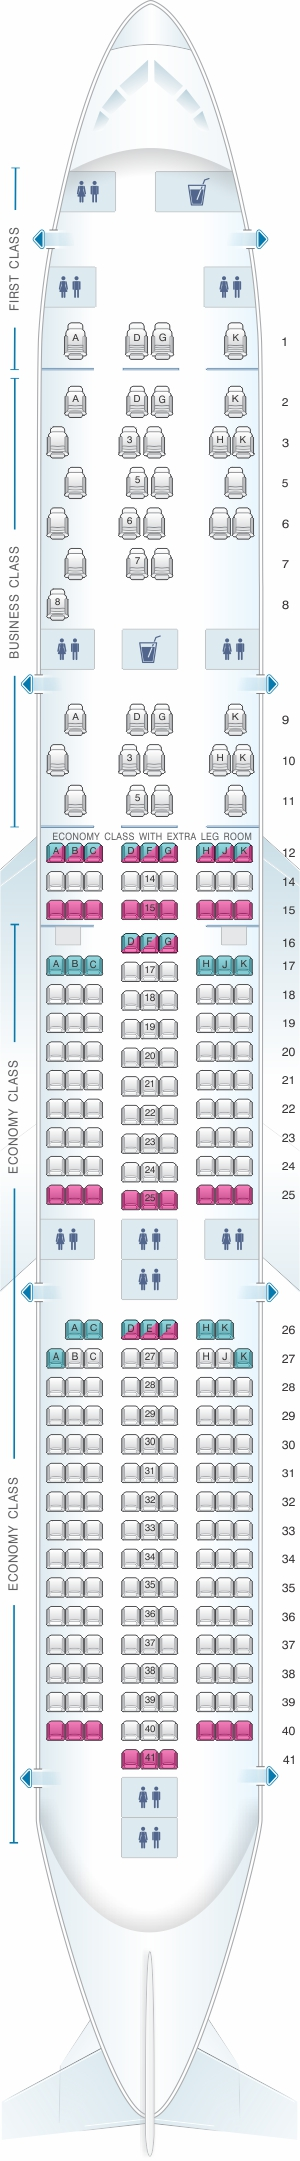 Seat map for Malaysia Airlines Airbus A350 900